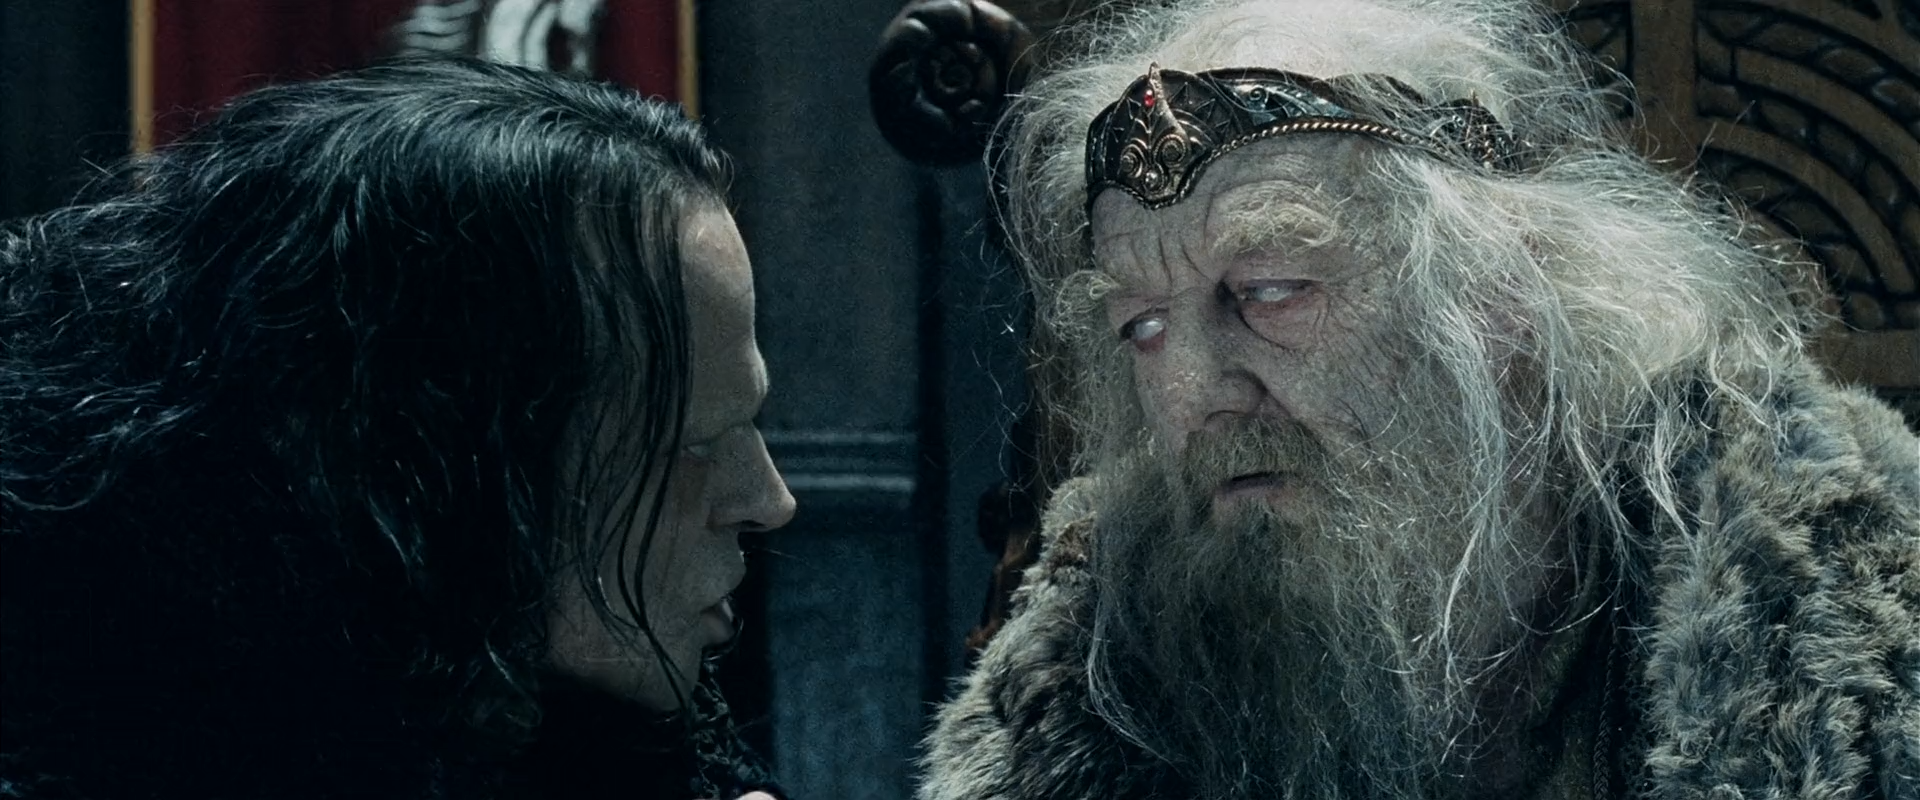 Lord Of The Rings King Extended Edition Putlocker